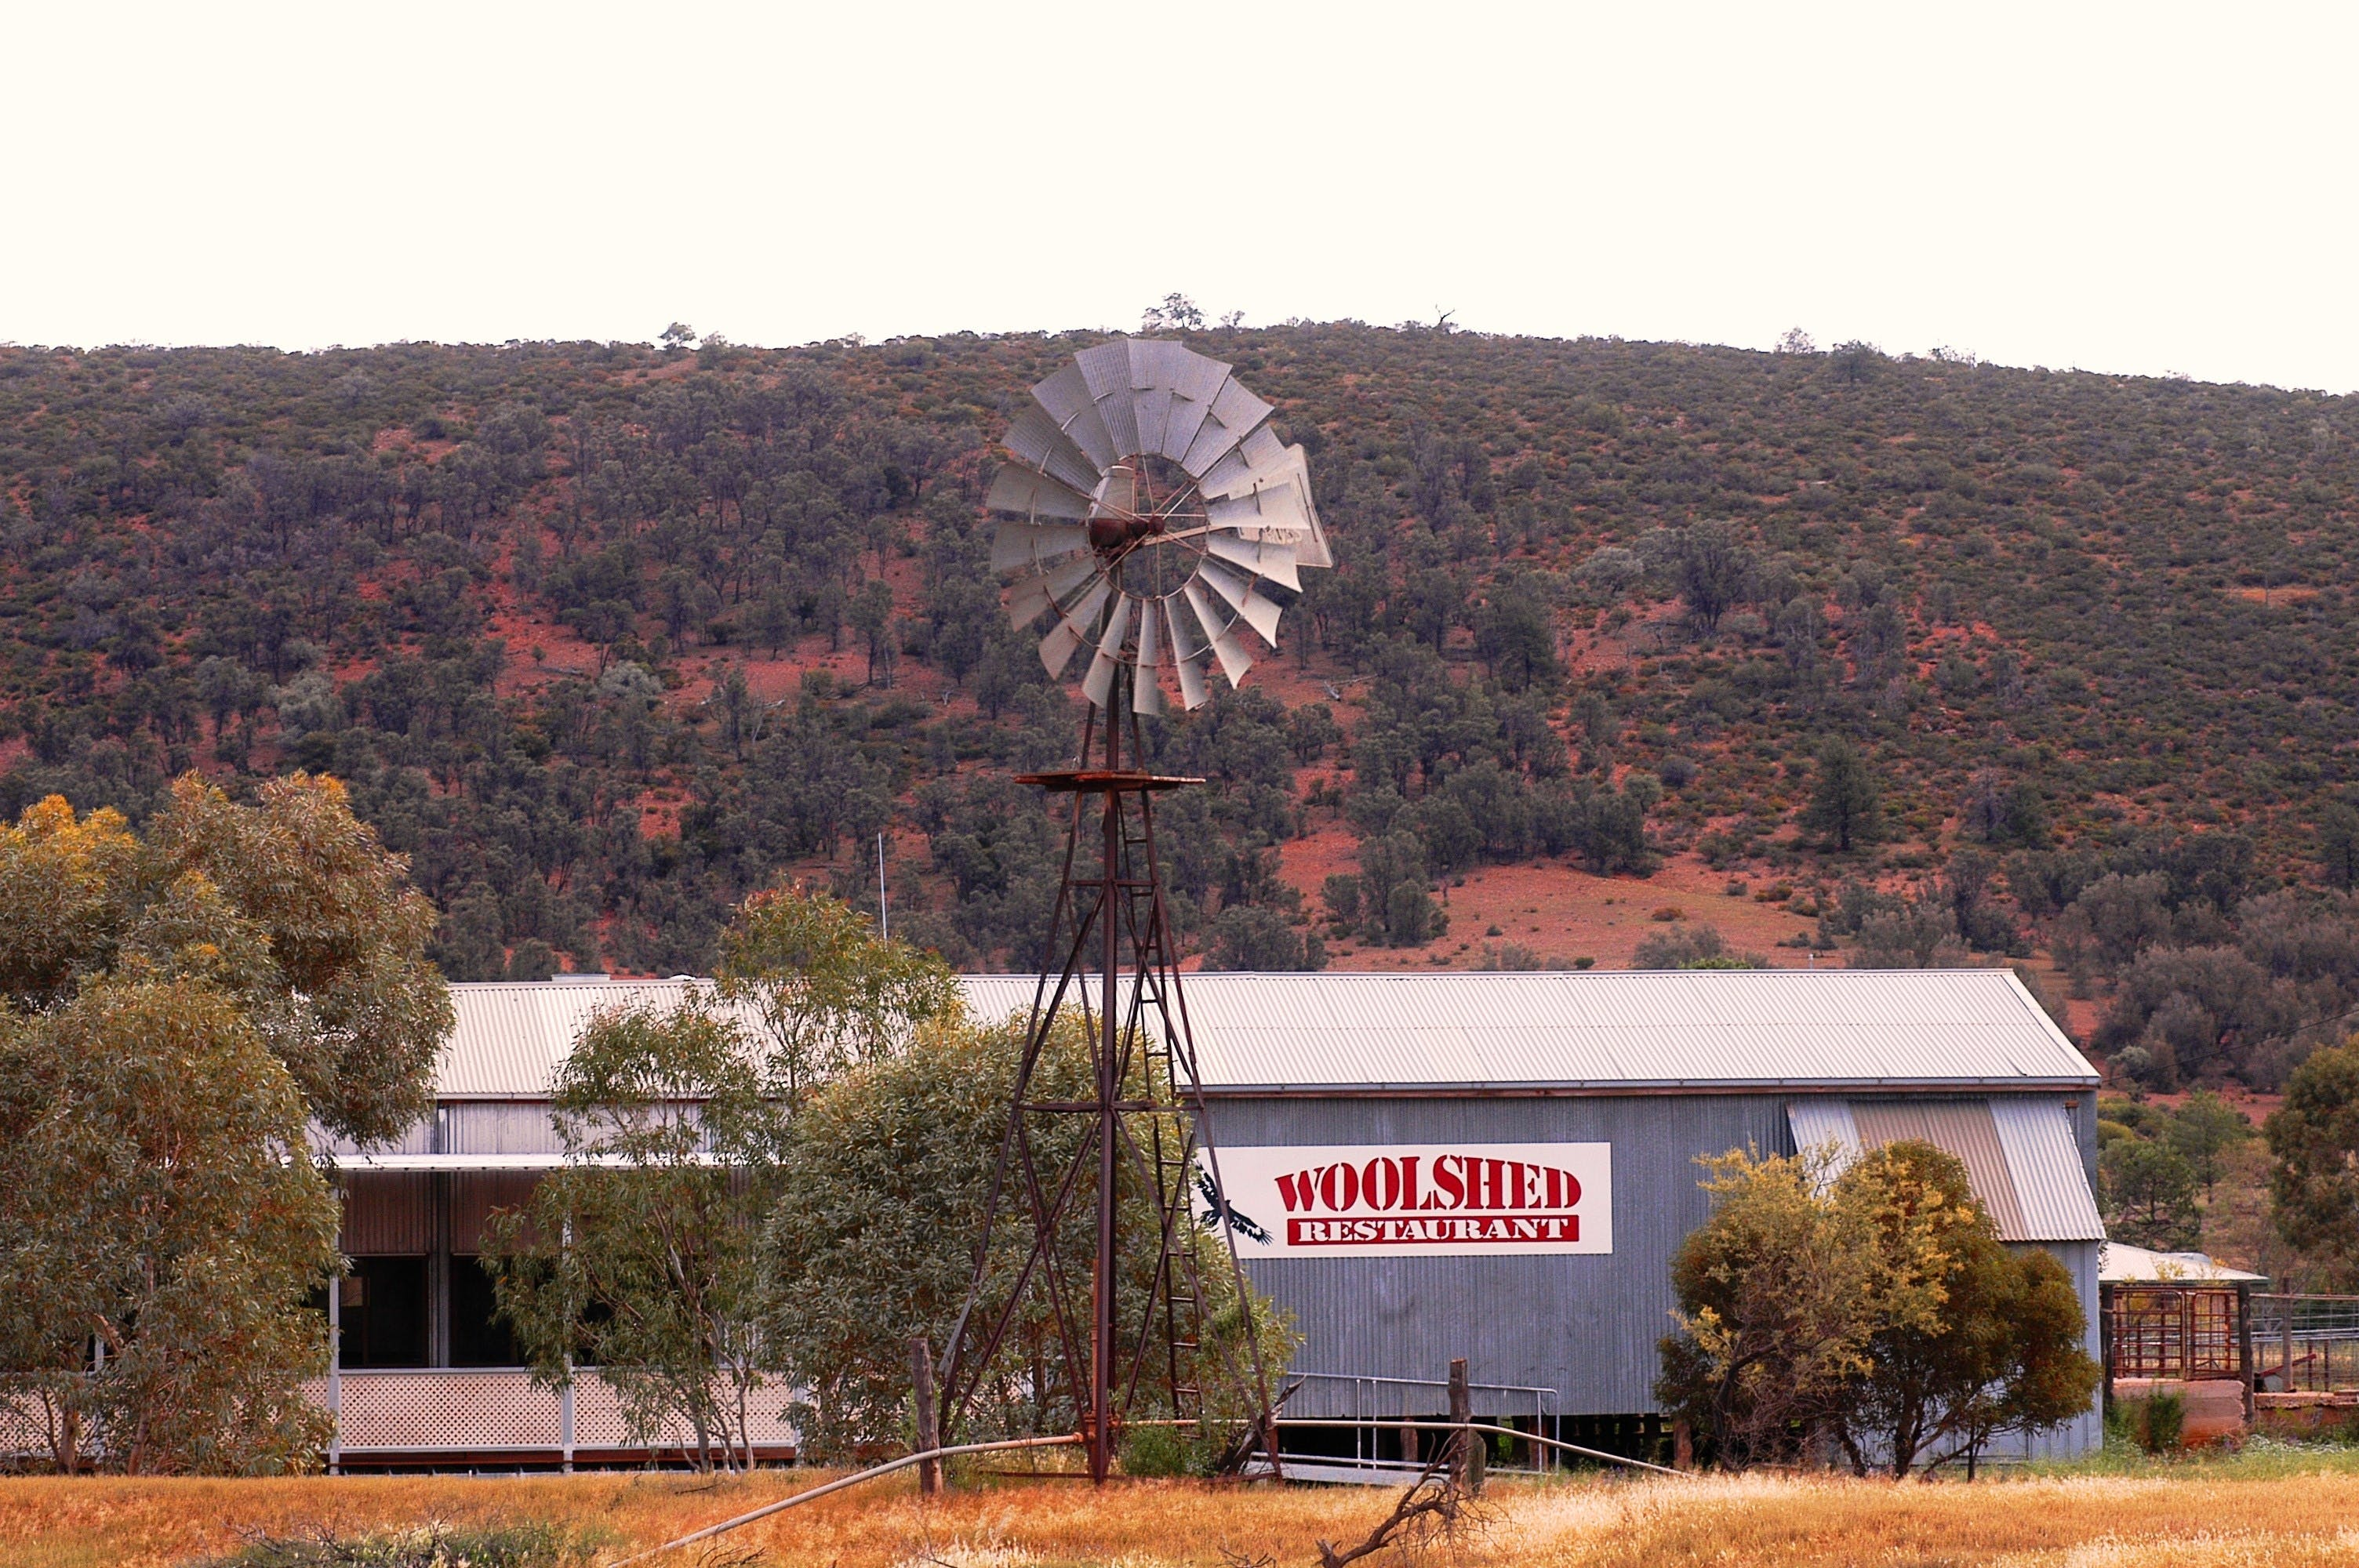 The Woolshed Restaurant at Rawnsley Park - Sydney Tourism